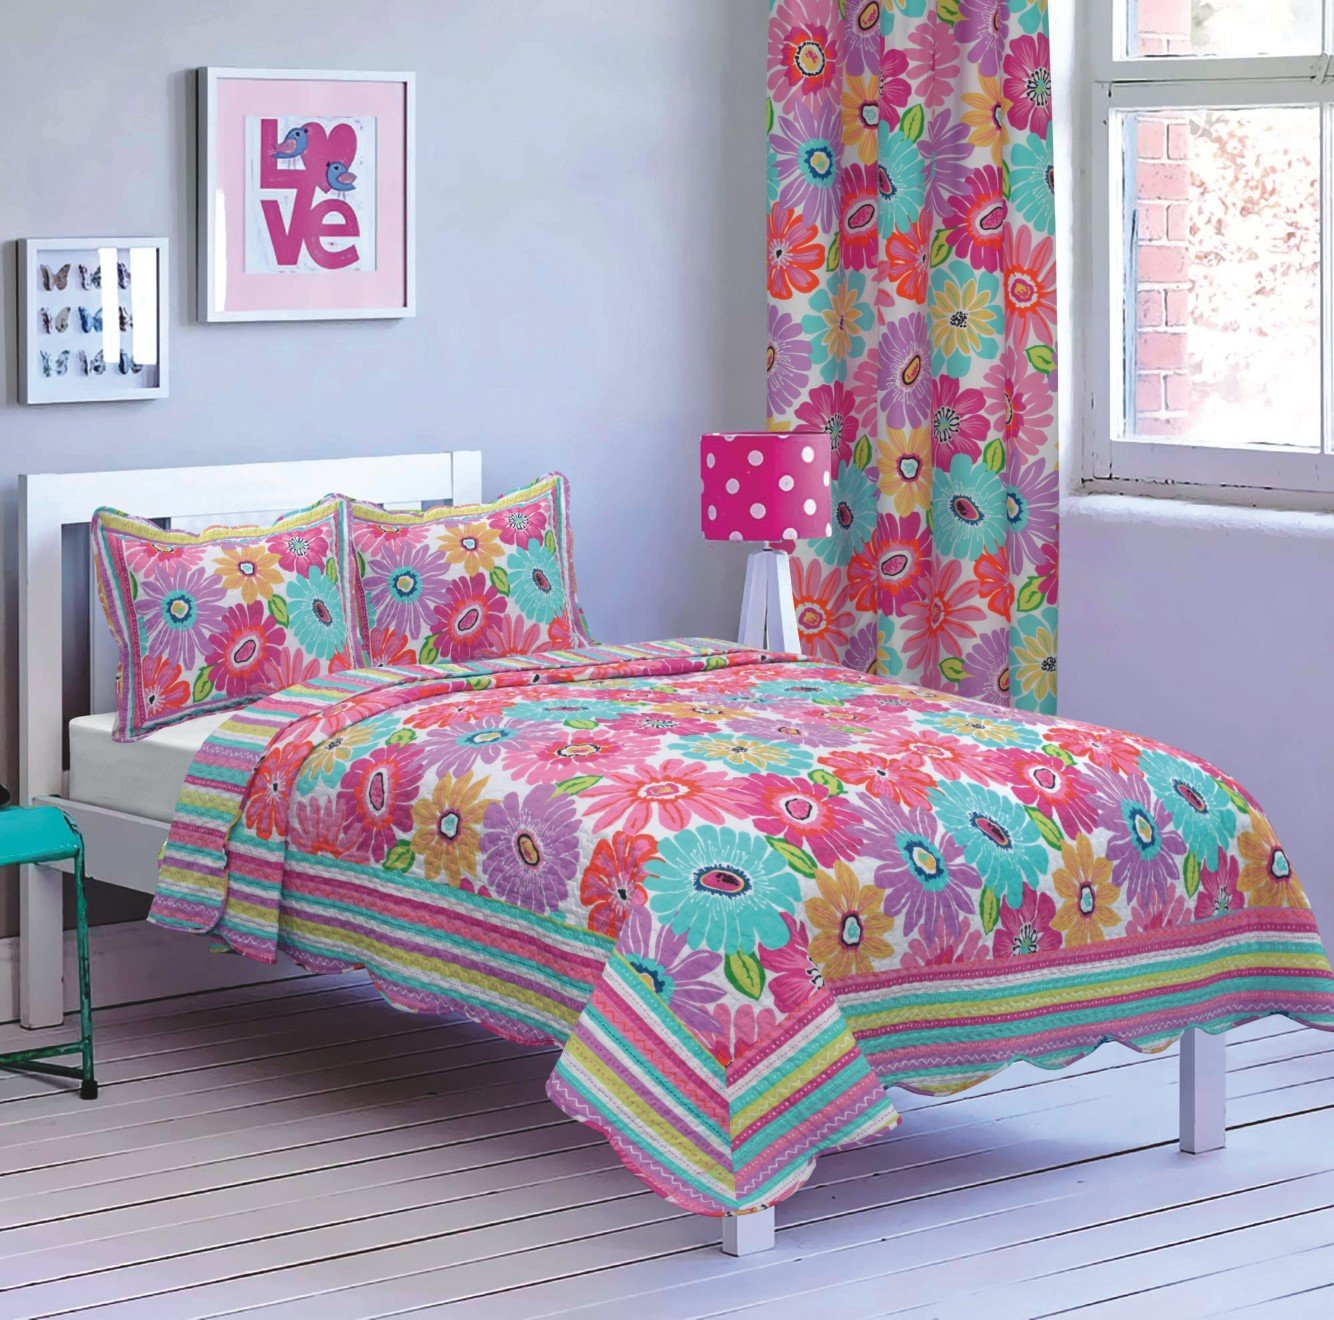 All American Collection New 4pc Flower Printed Bedspread Set w/ Matching Curtains Pink/Purple